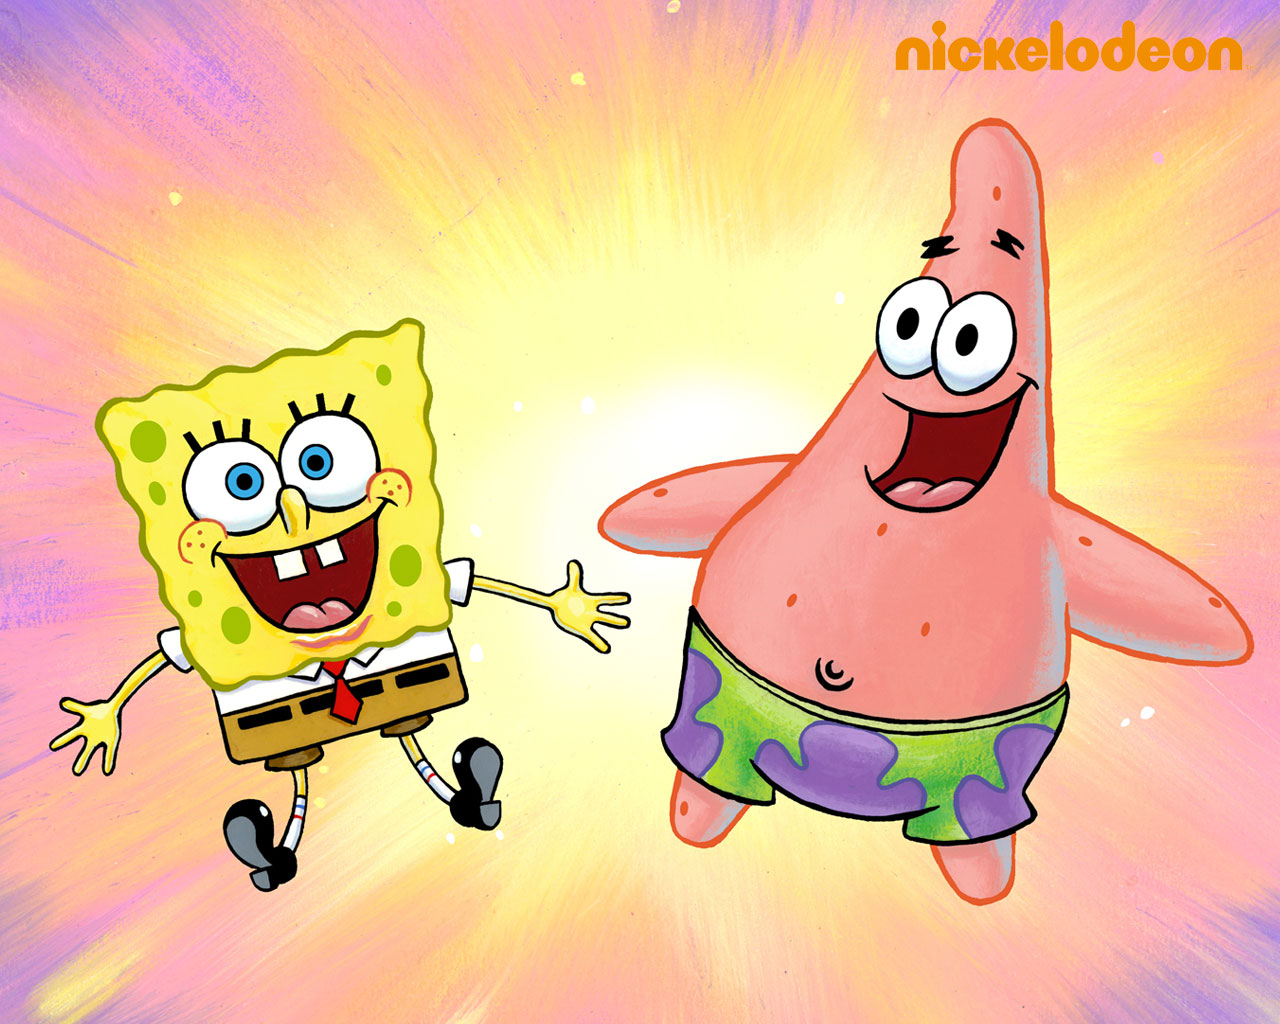 Spongebob &amp; Patrick wallpapers